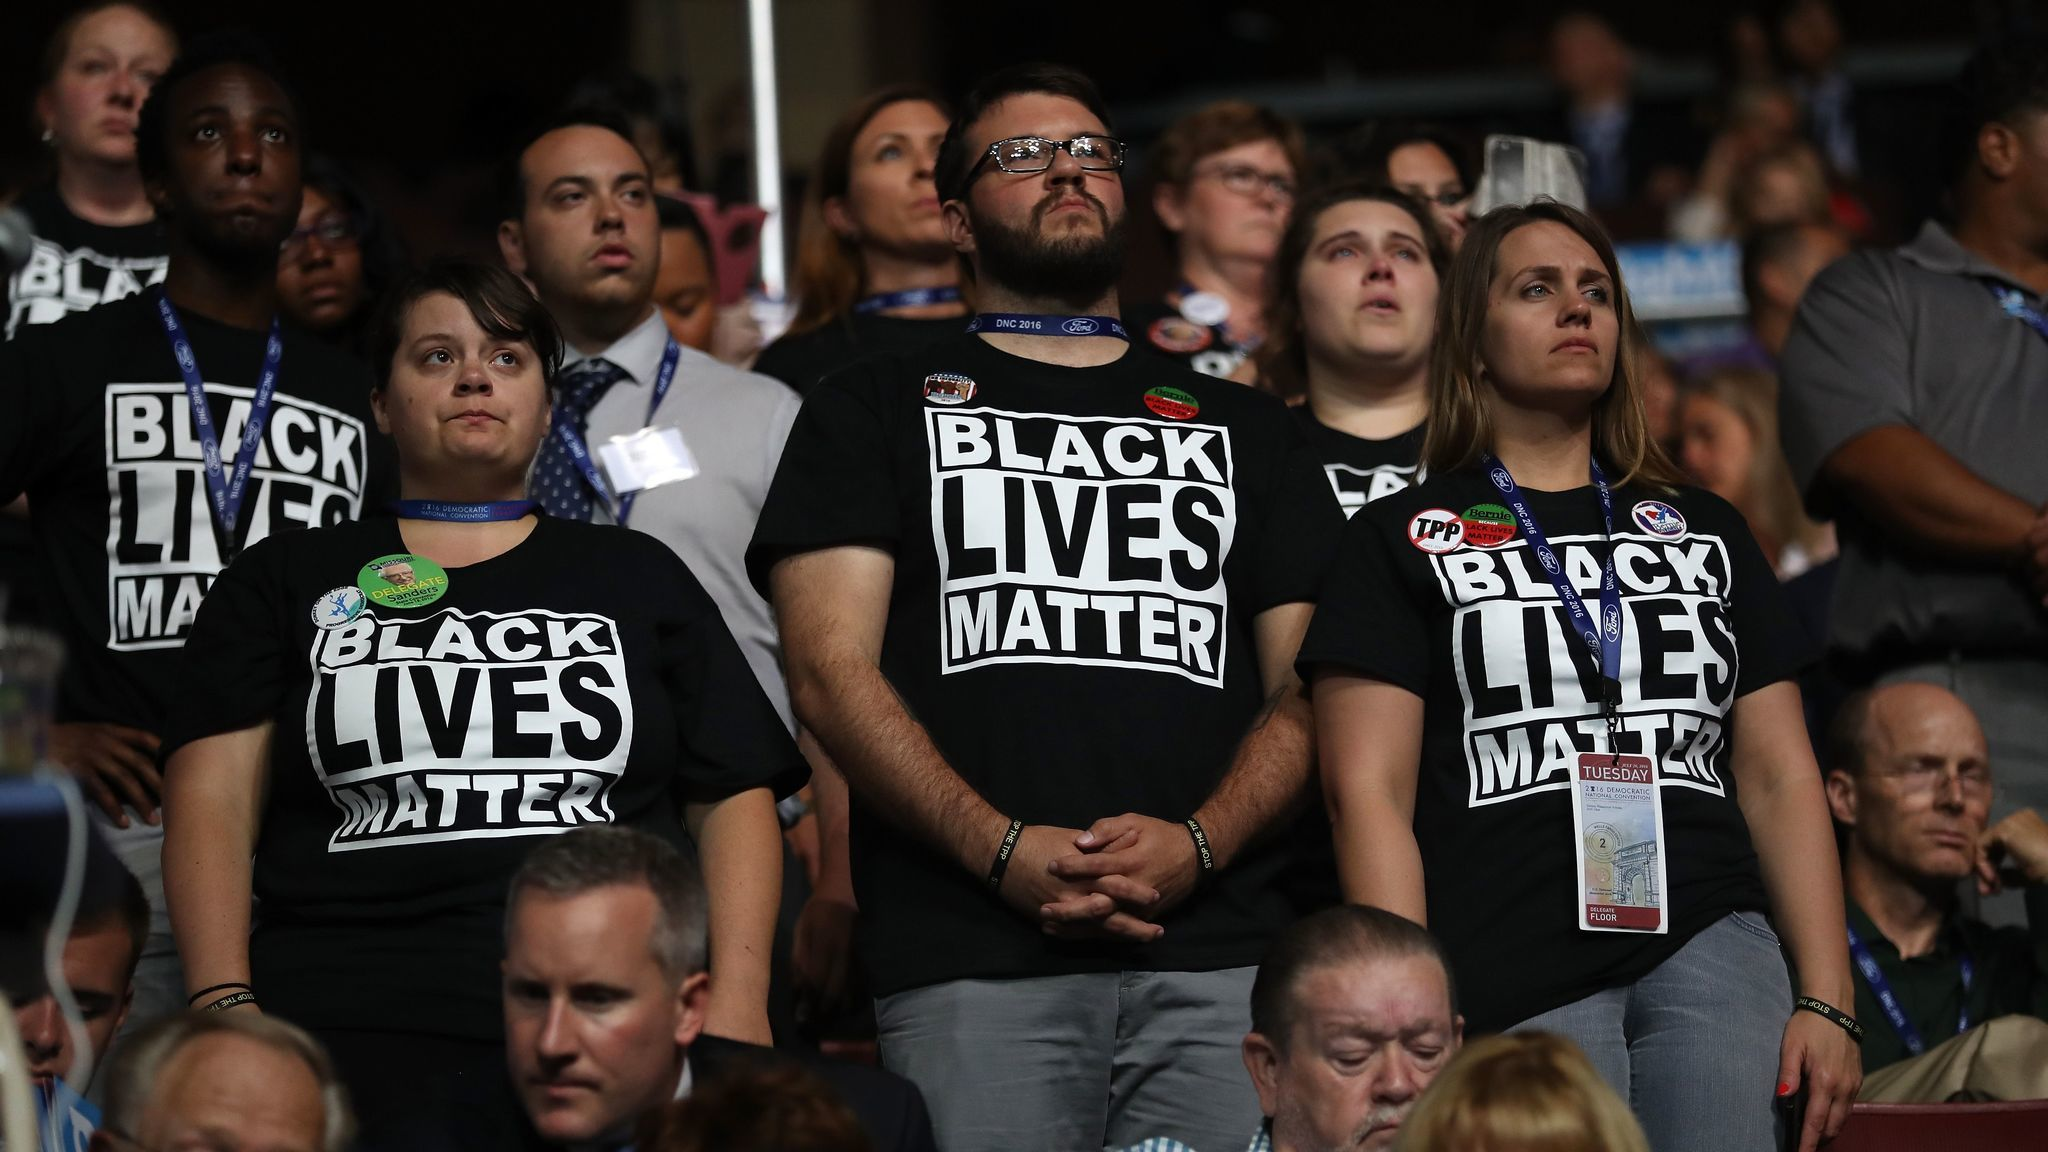 A message at the Democratic National Convention in July 2016.